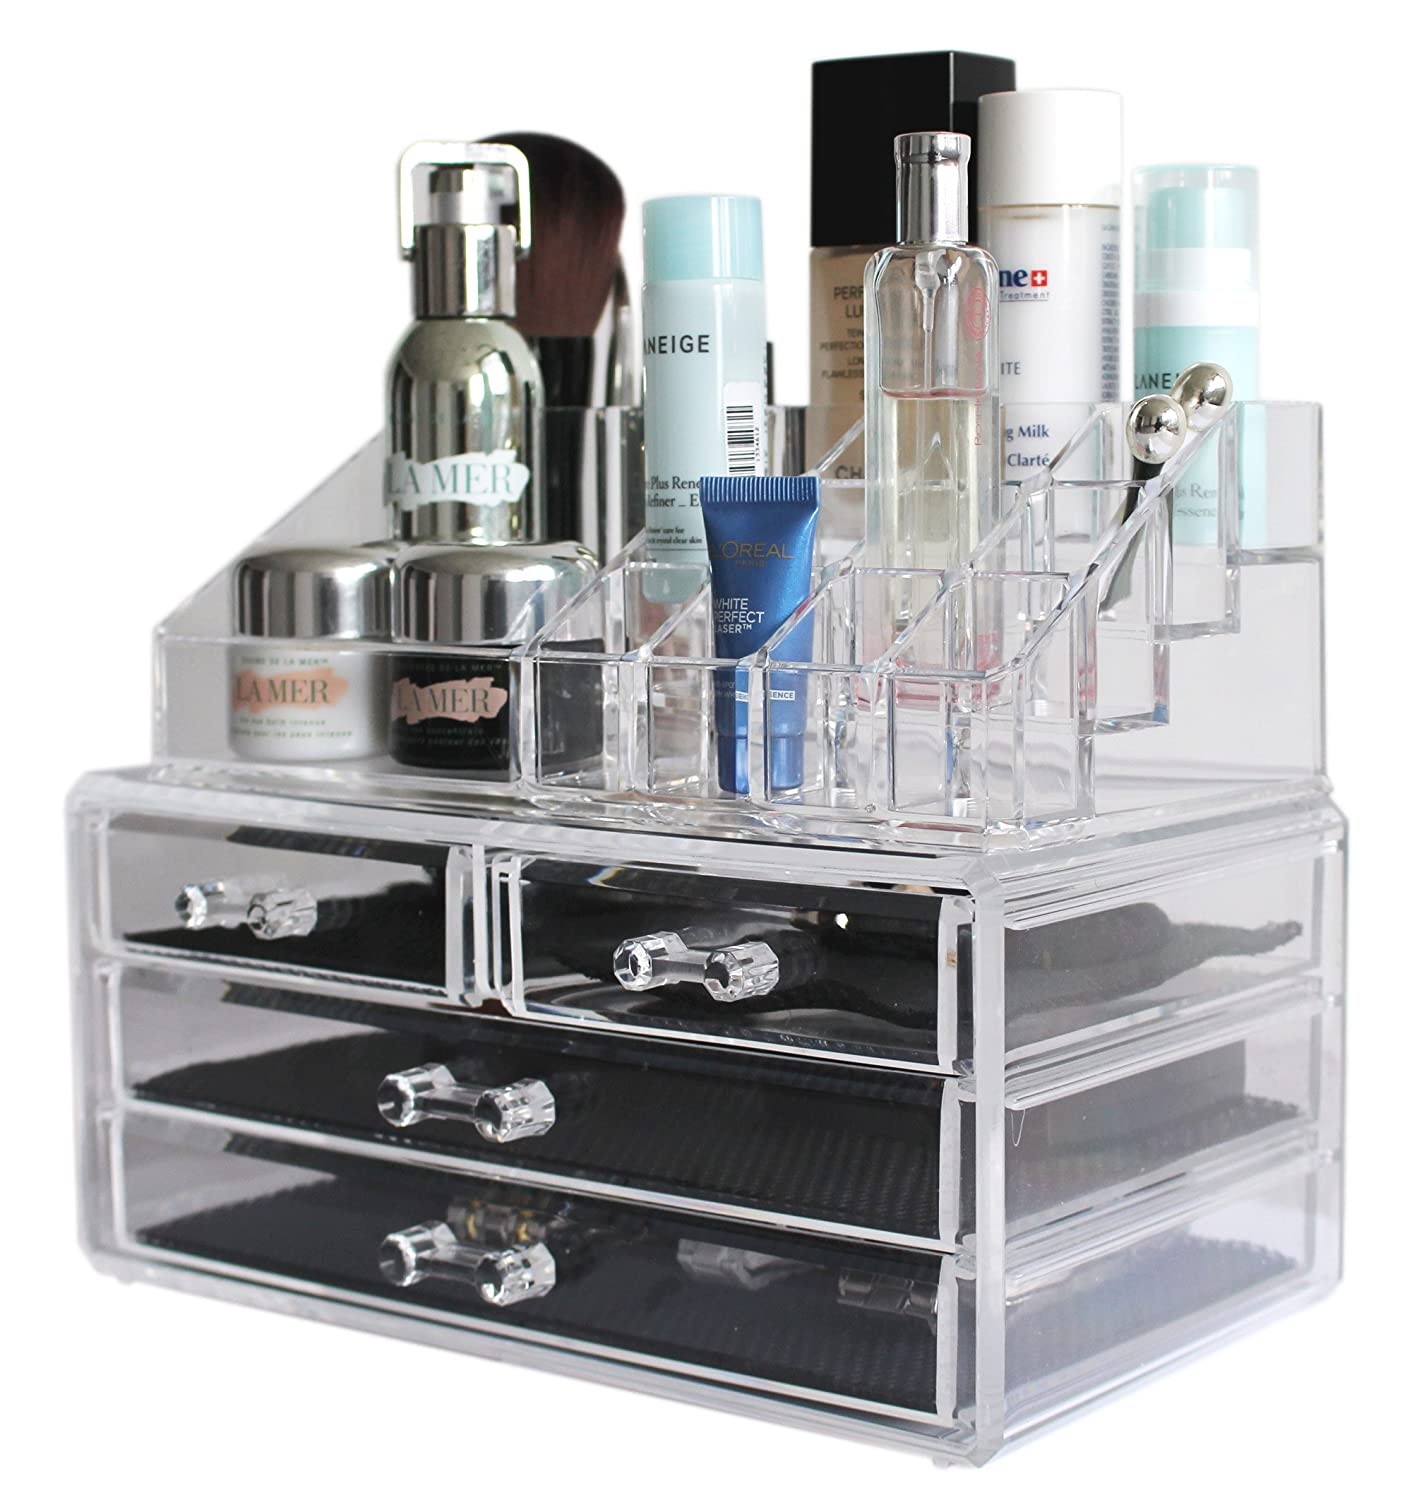 Sodynee Jewelry and Cosmetic Storage 2 Piece Acrylic Makeup Organizer